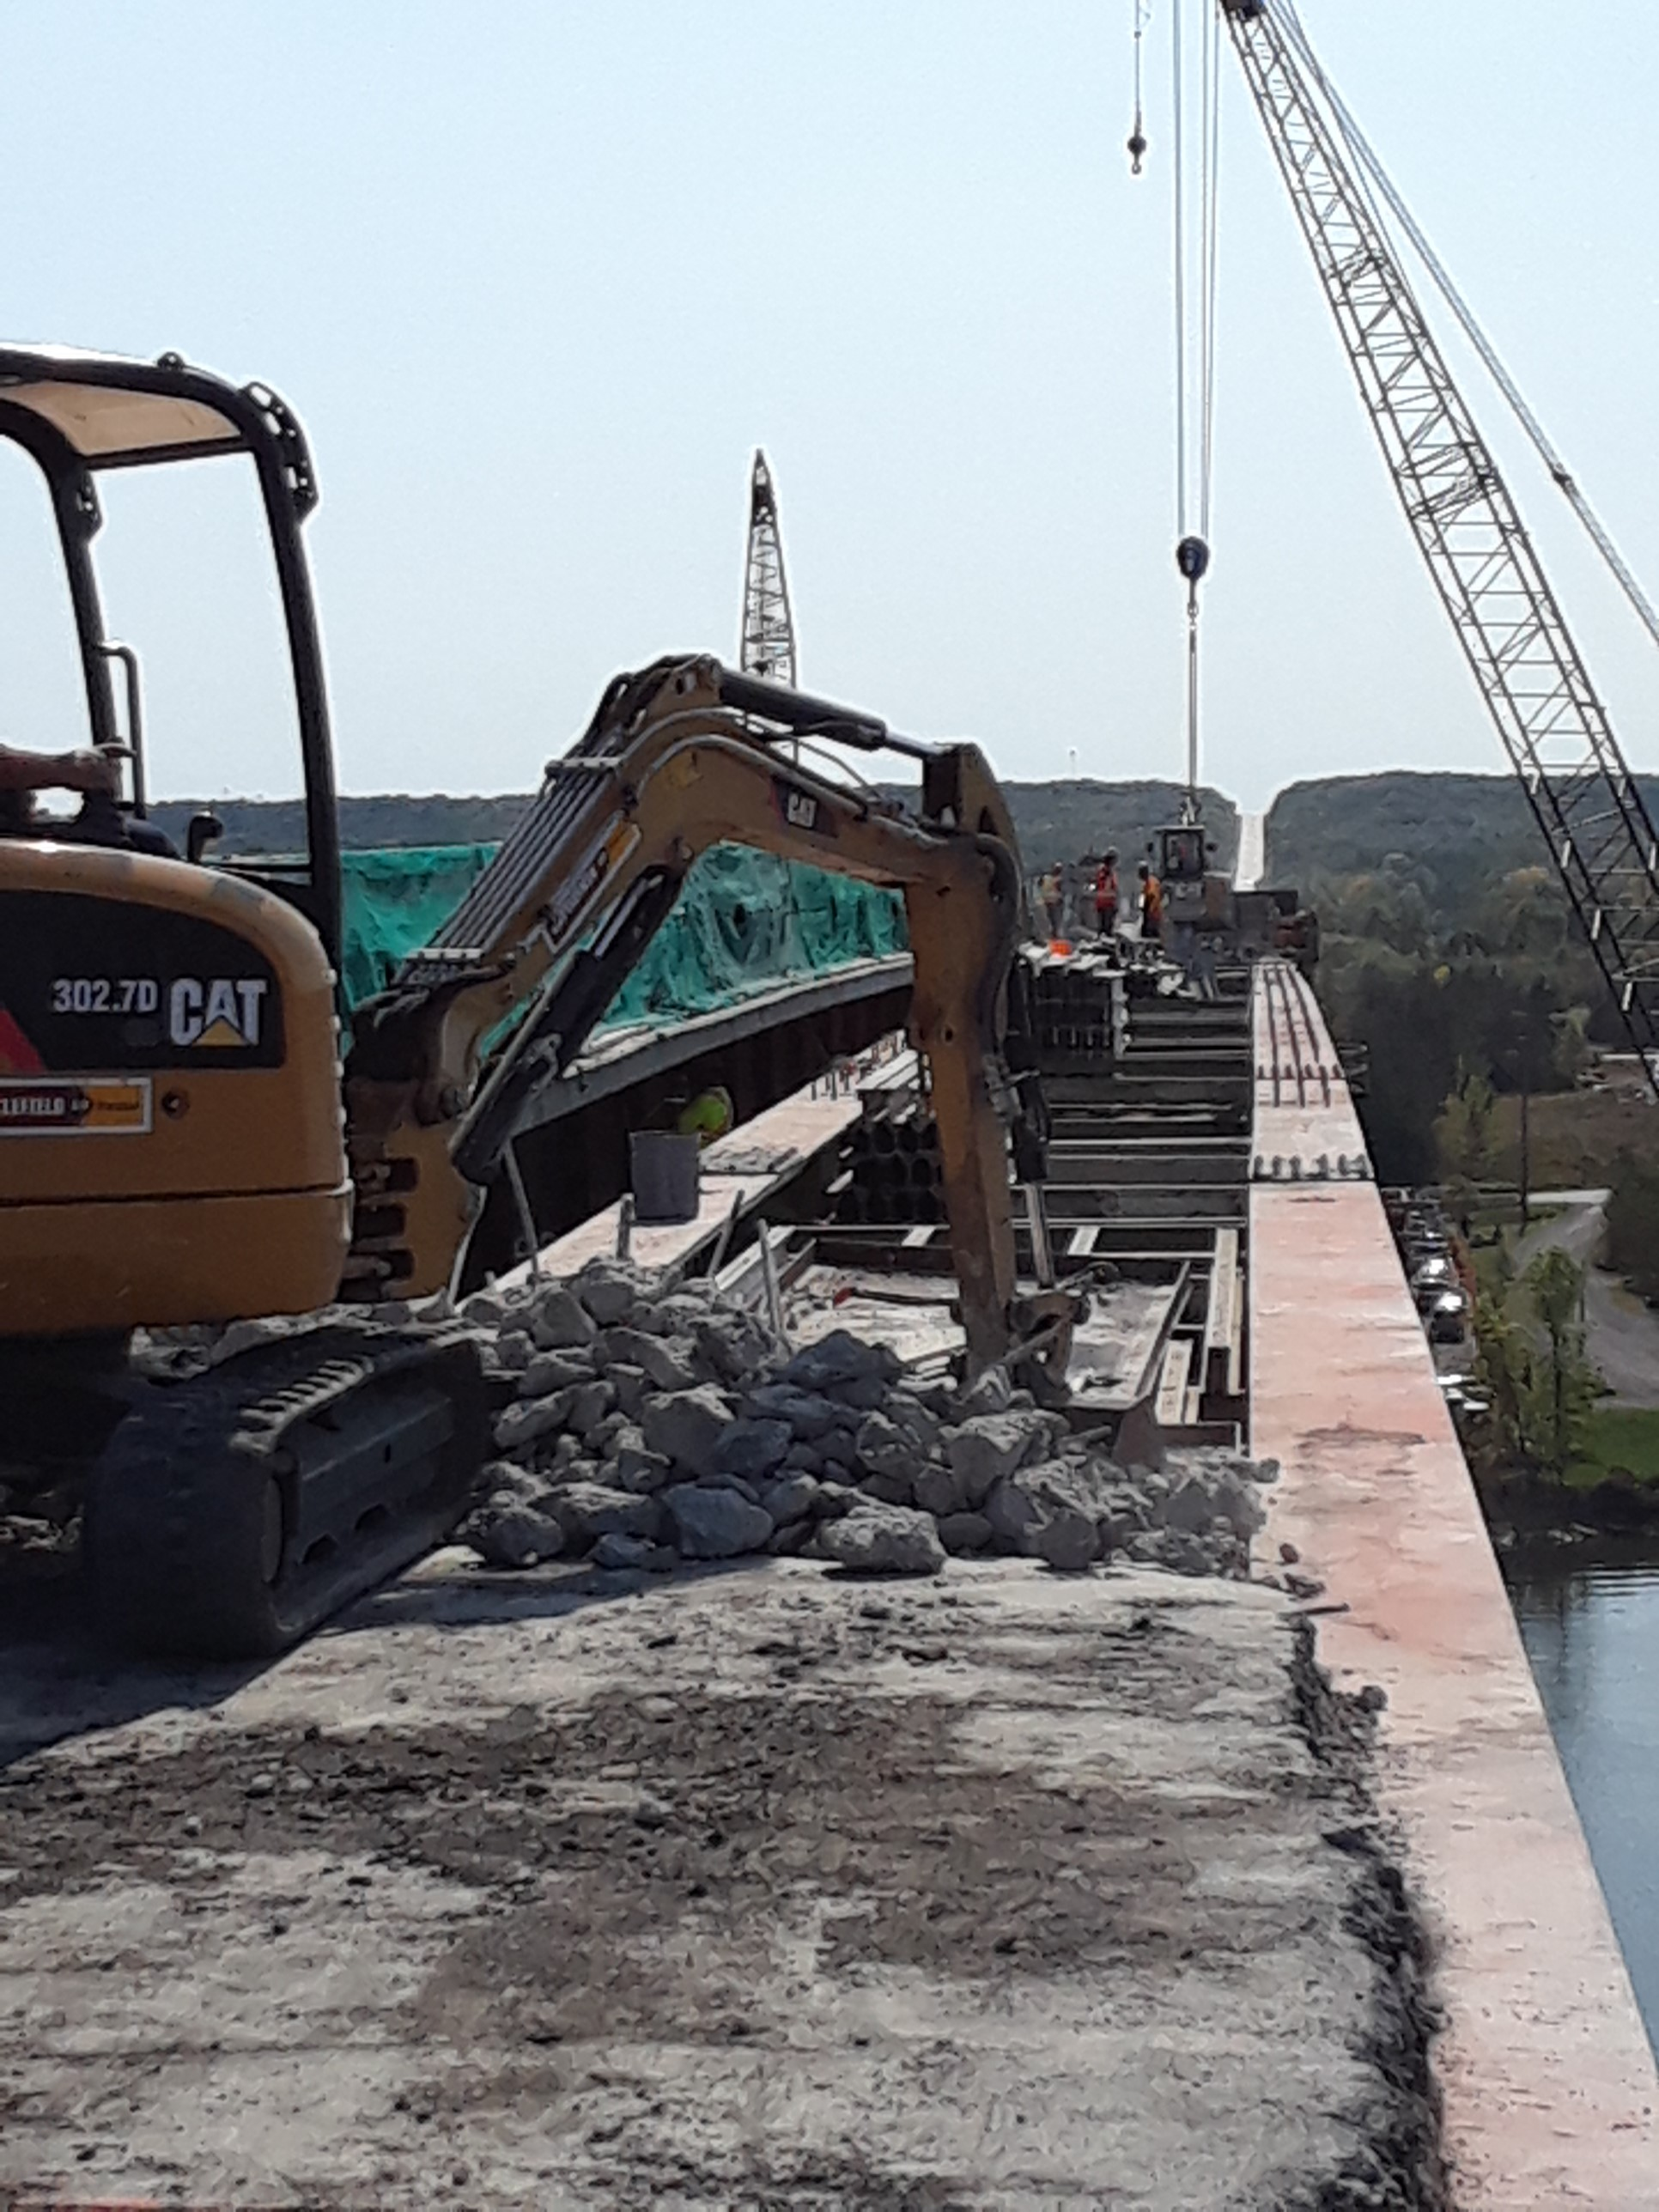 Removal of the concrete deck